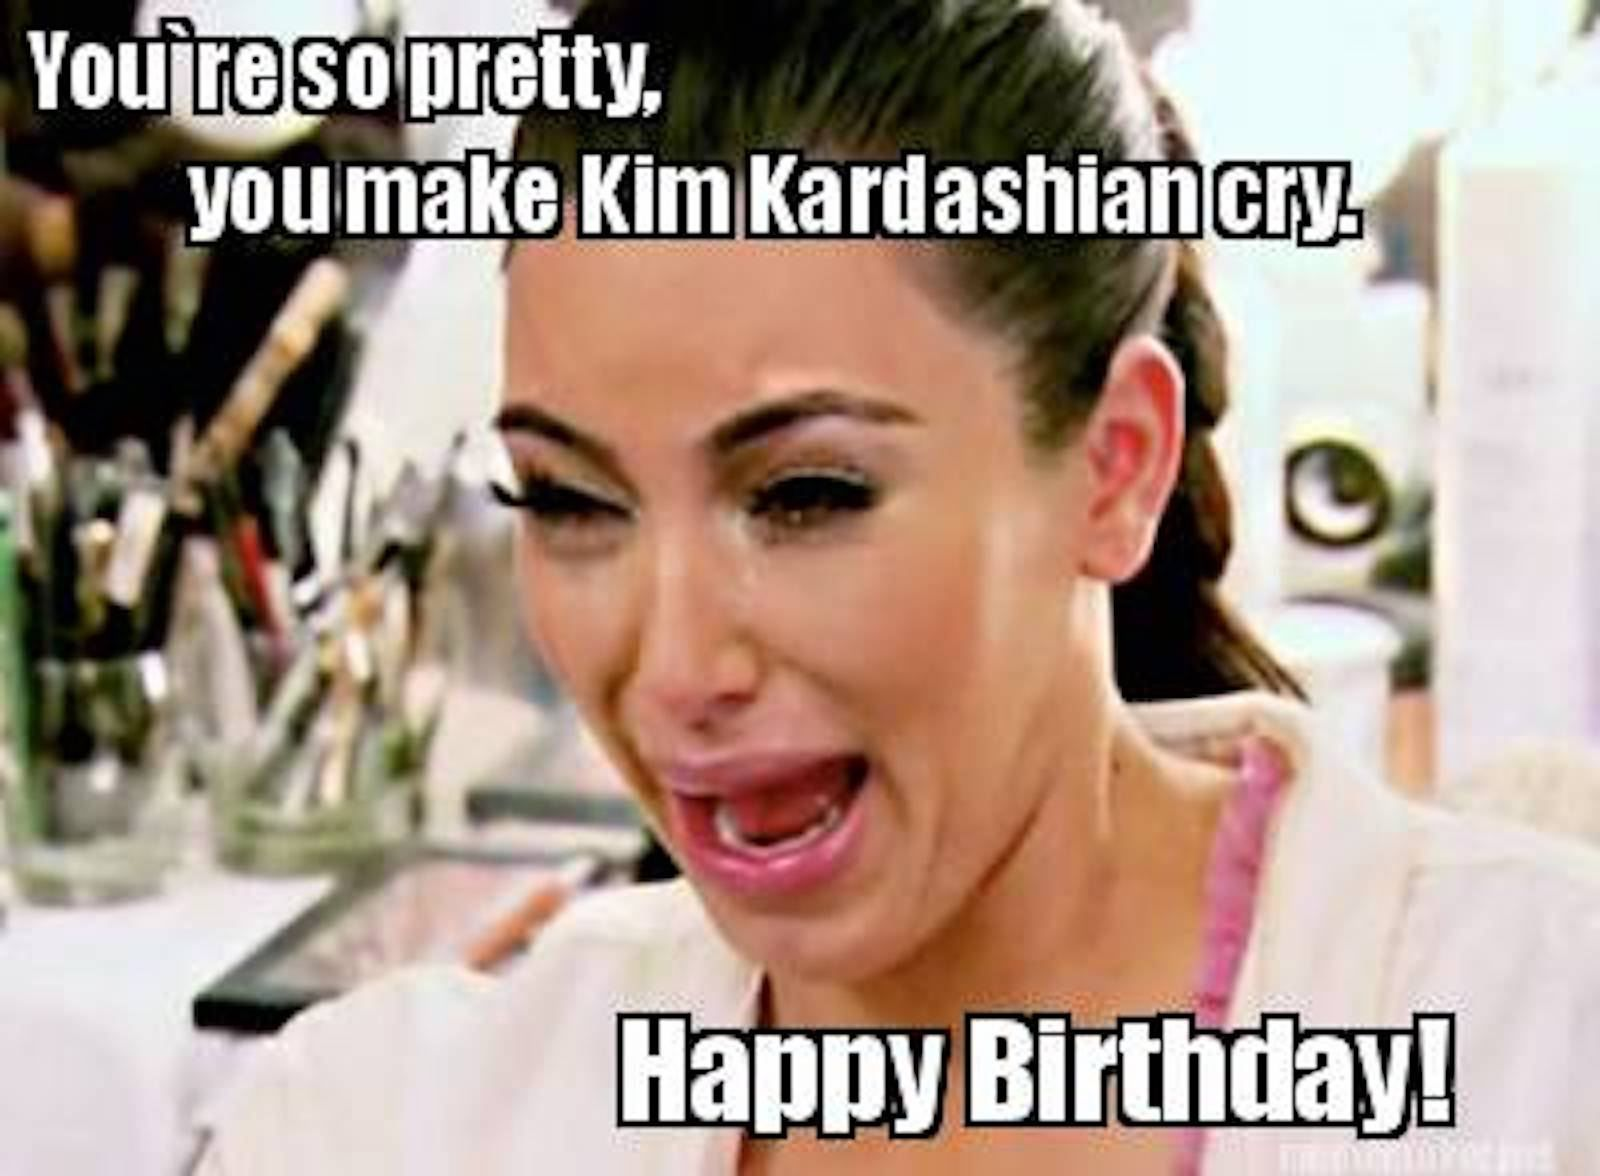 15 Of The Best Happy Birthday Memes Funny Memes For Her Happy Birthday Meme Funny Birthday Meme